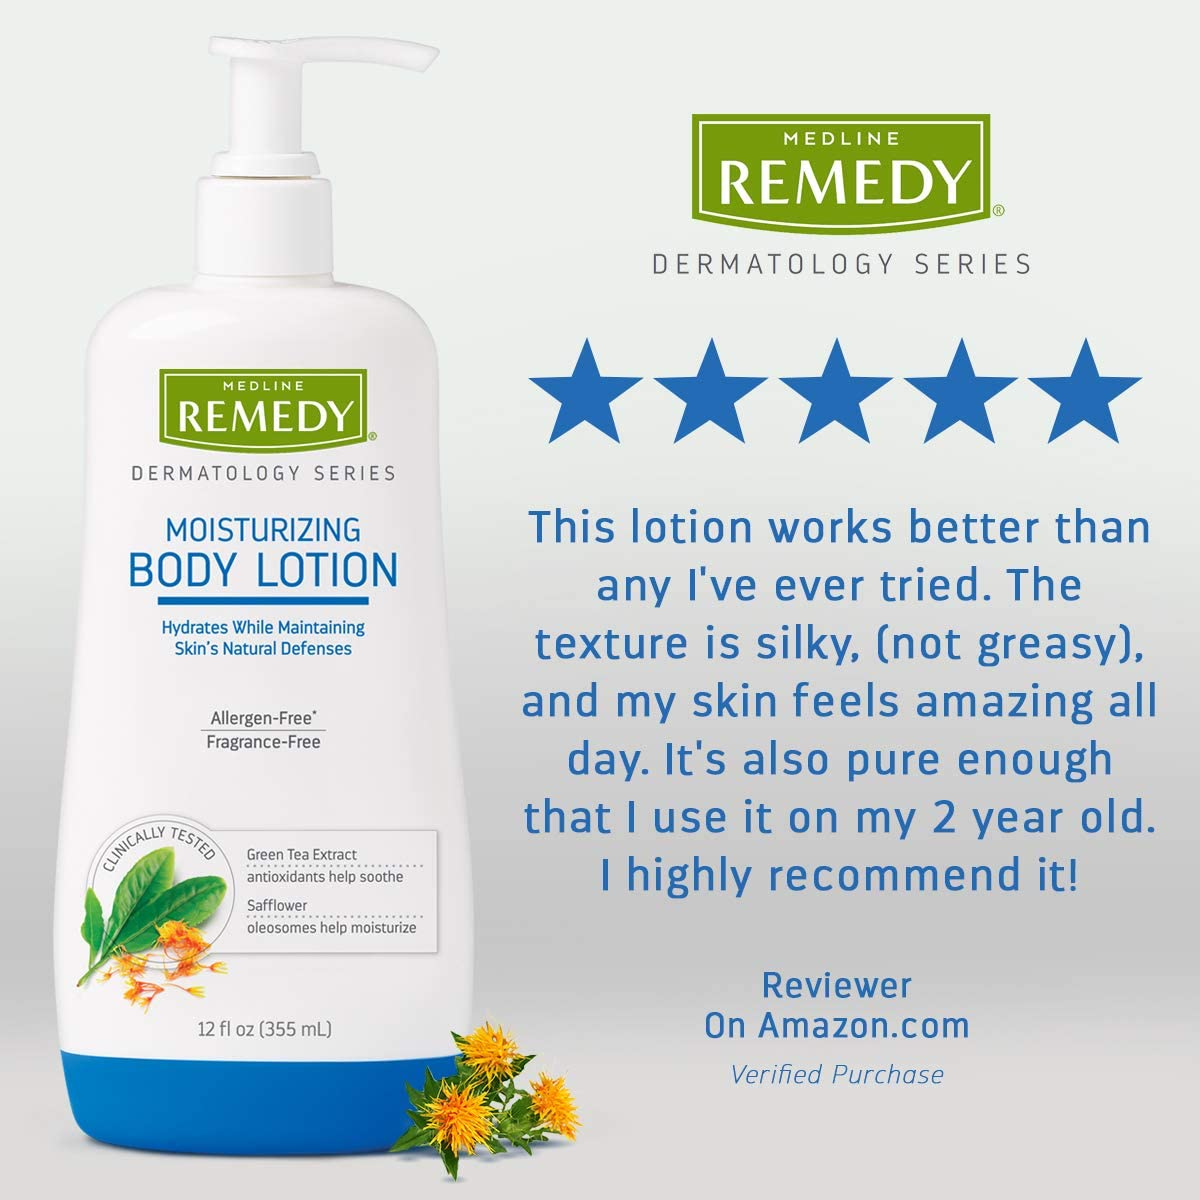 Remedy Dermatology Series Body Lotion for Dry Skin, 8 Oz, Unscented Lotion, paraben Free, Lotion for Sensitive Skin: Health & Personal Care